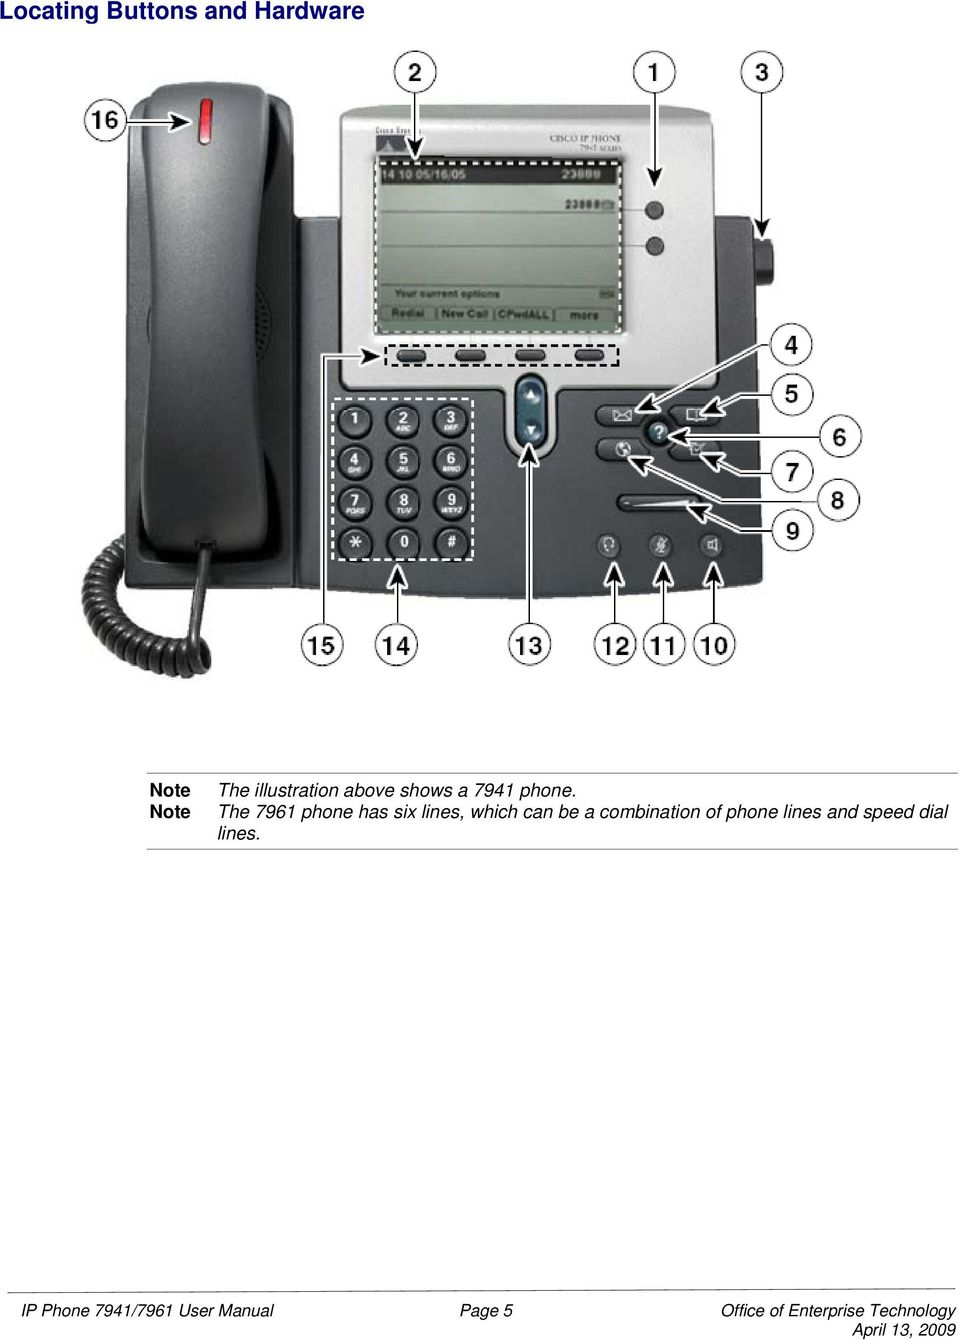 The 7961 phone has six lines, which can be a combination